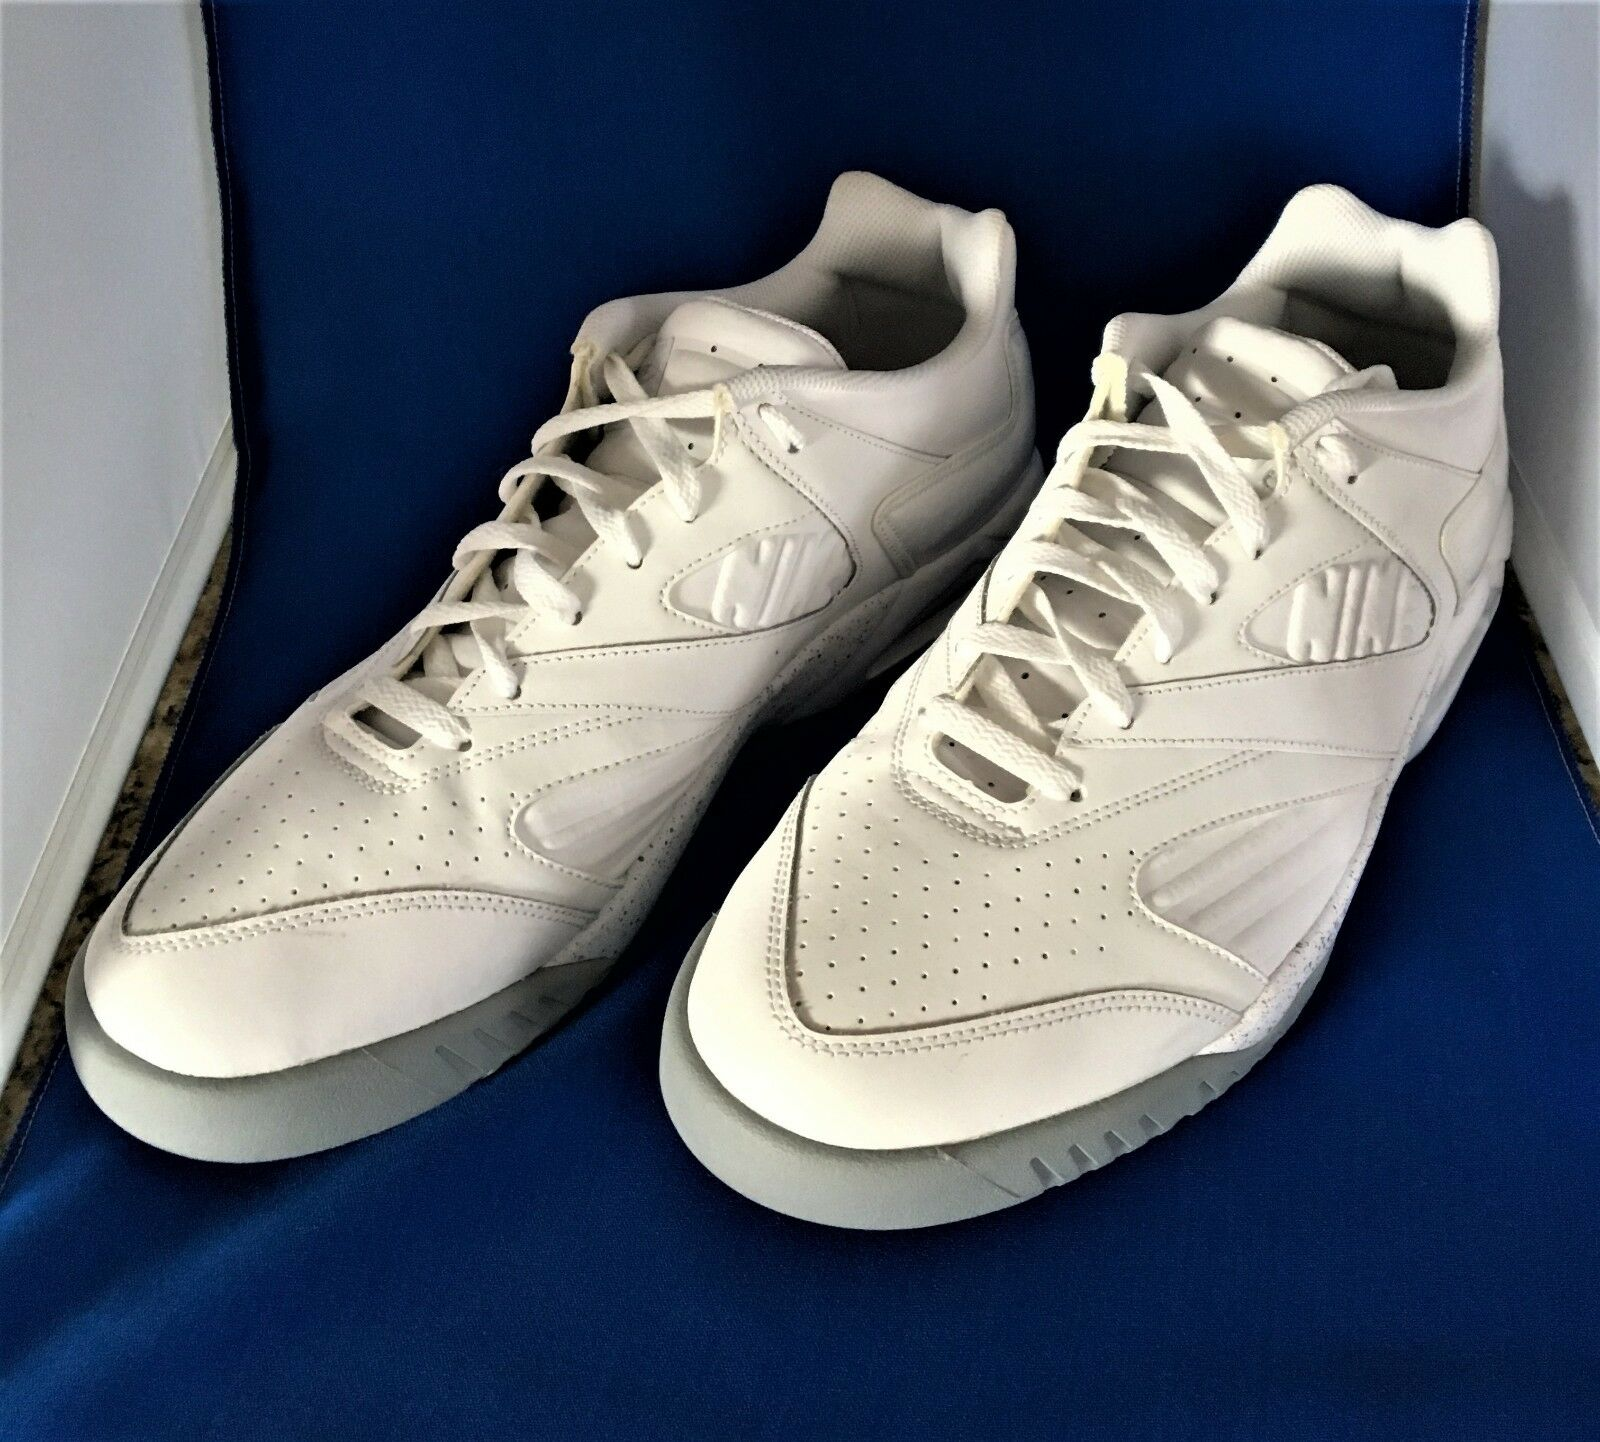 Nike Air Tech Challenge IV Low Men's Athletic Sneakers Rare size 12 1 2 new